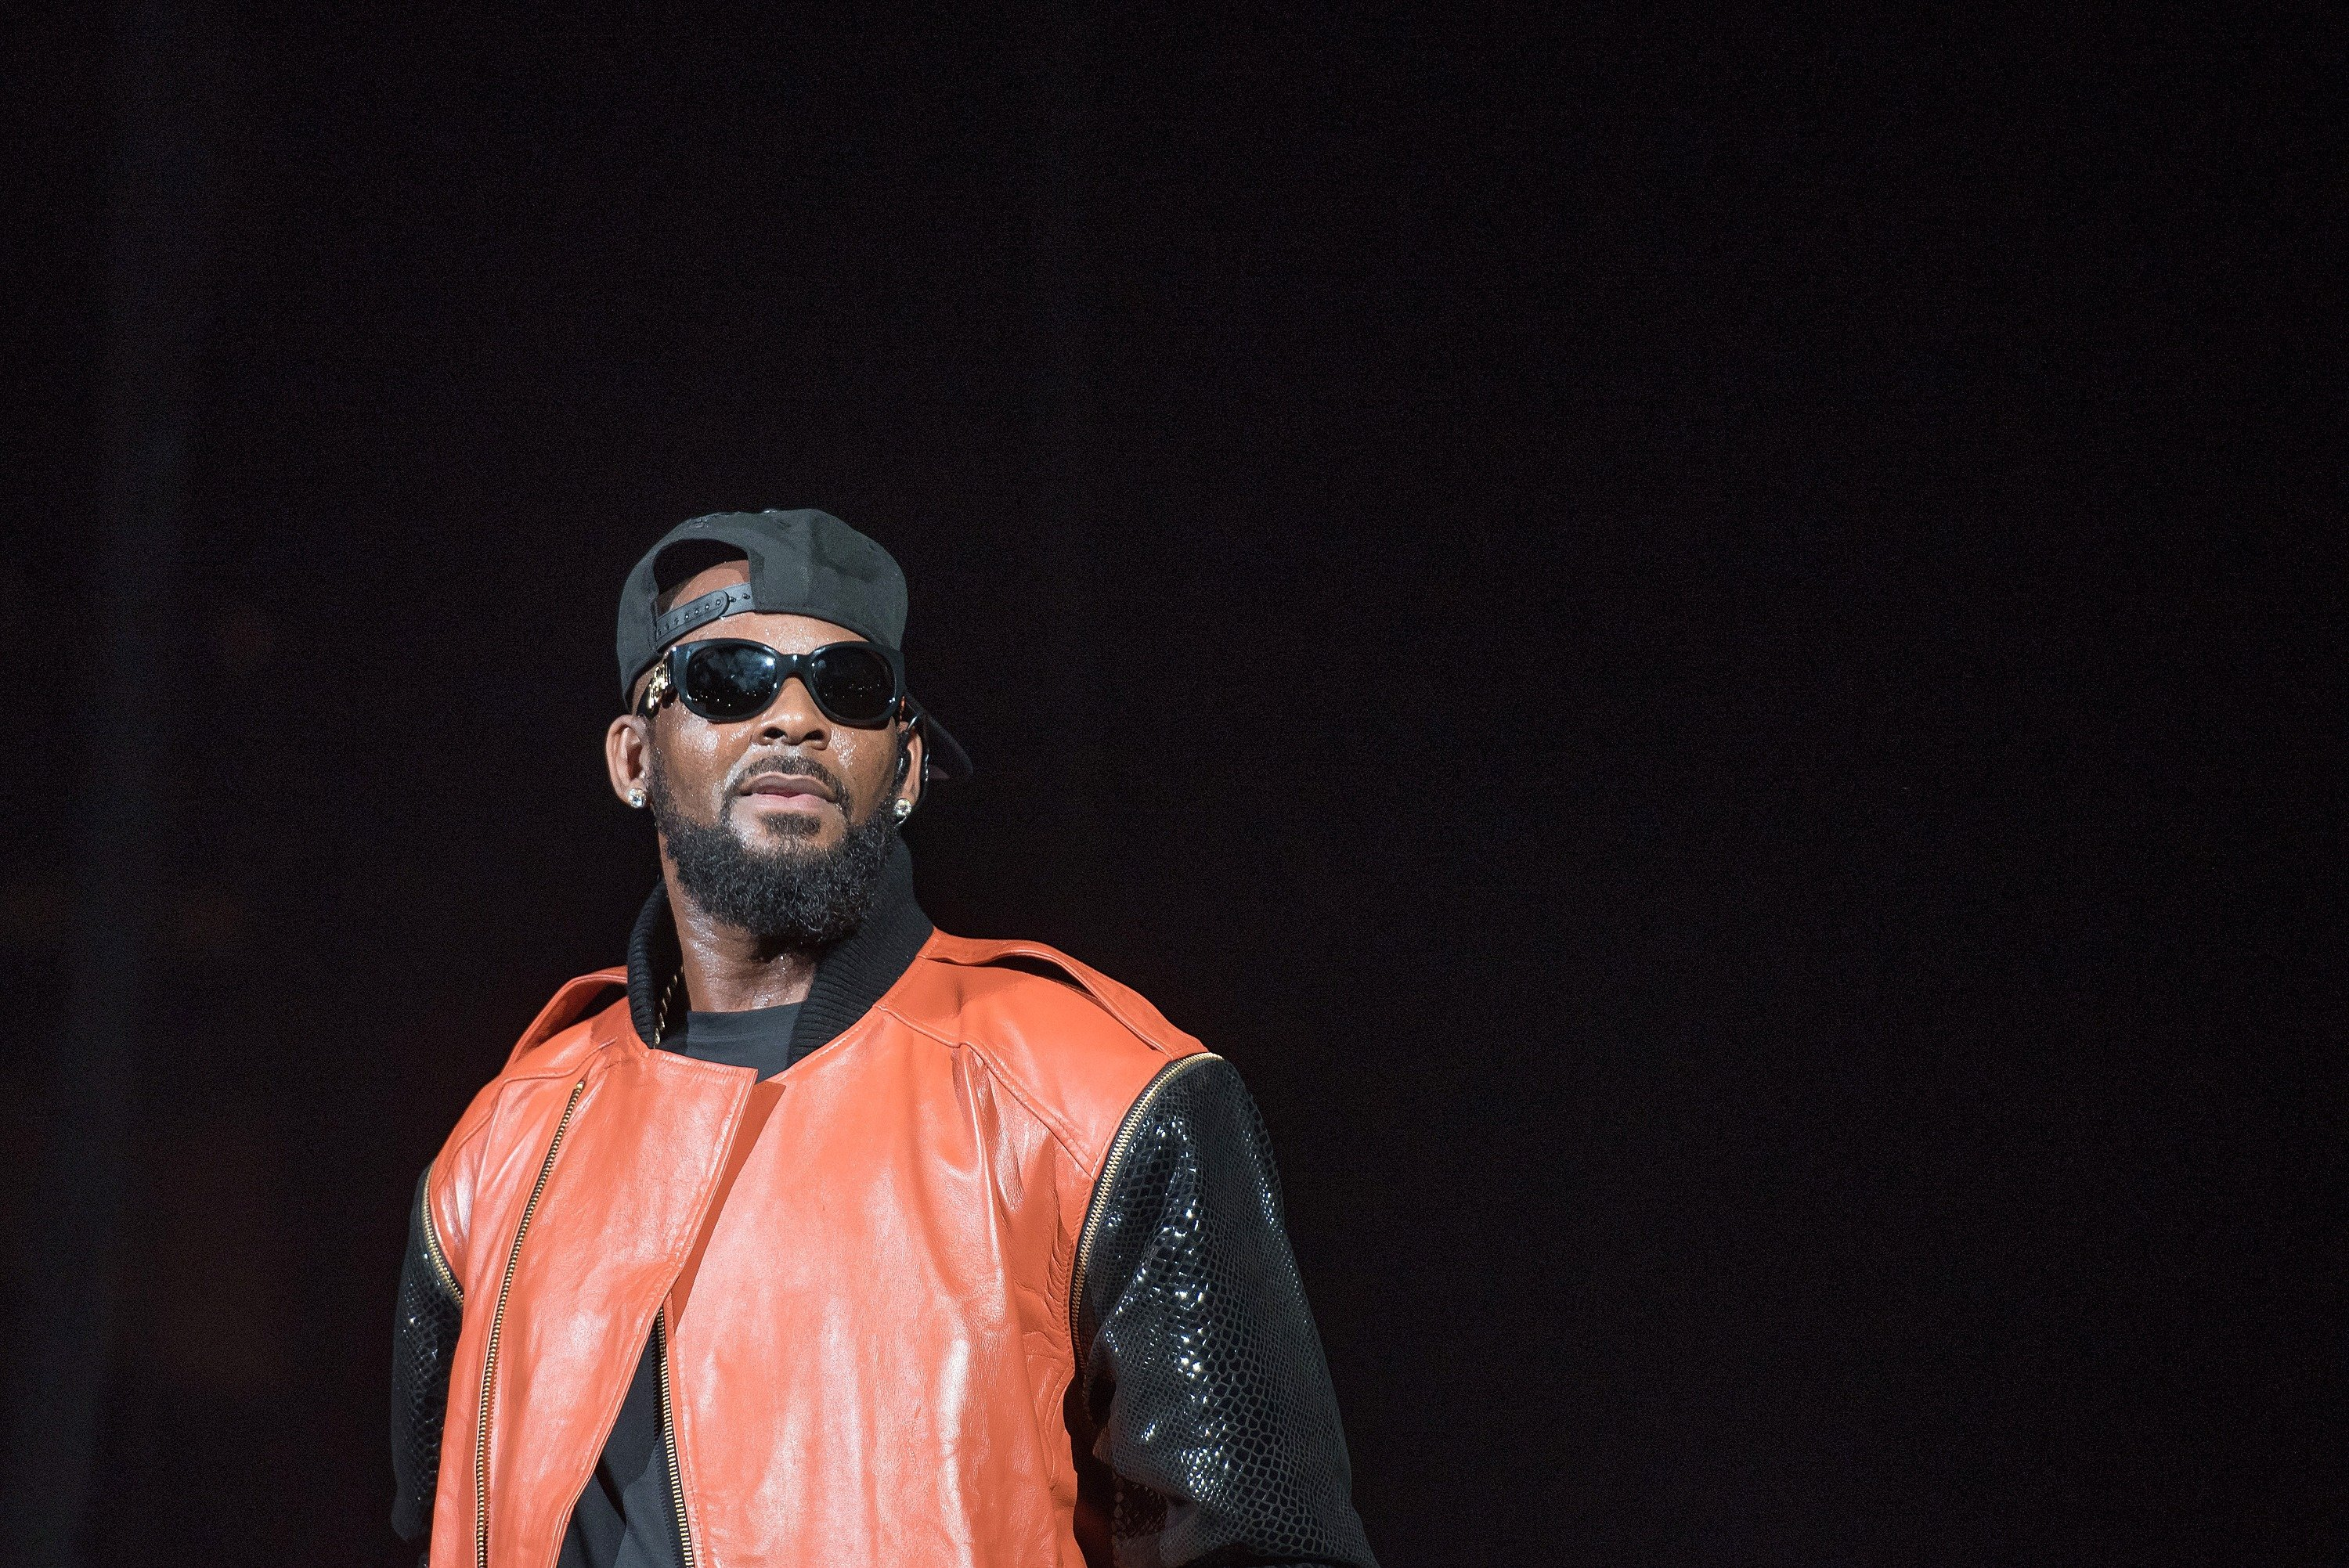 R. Kelly performs in New York City. September 25, 2015. | Source: GettyImages/Global Images of Ukraine